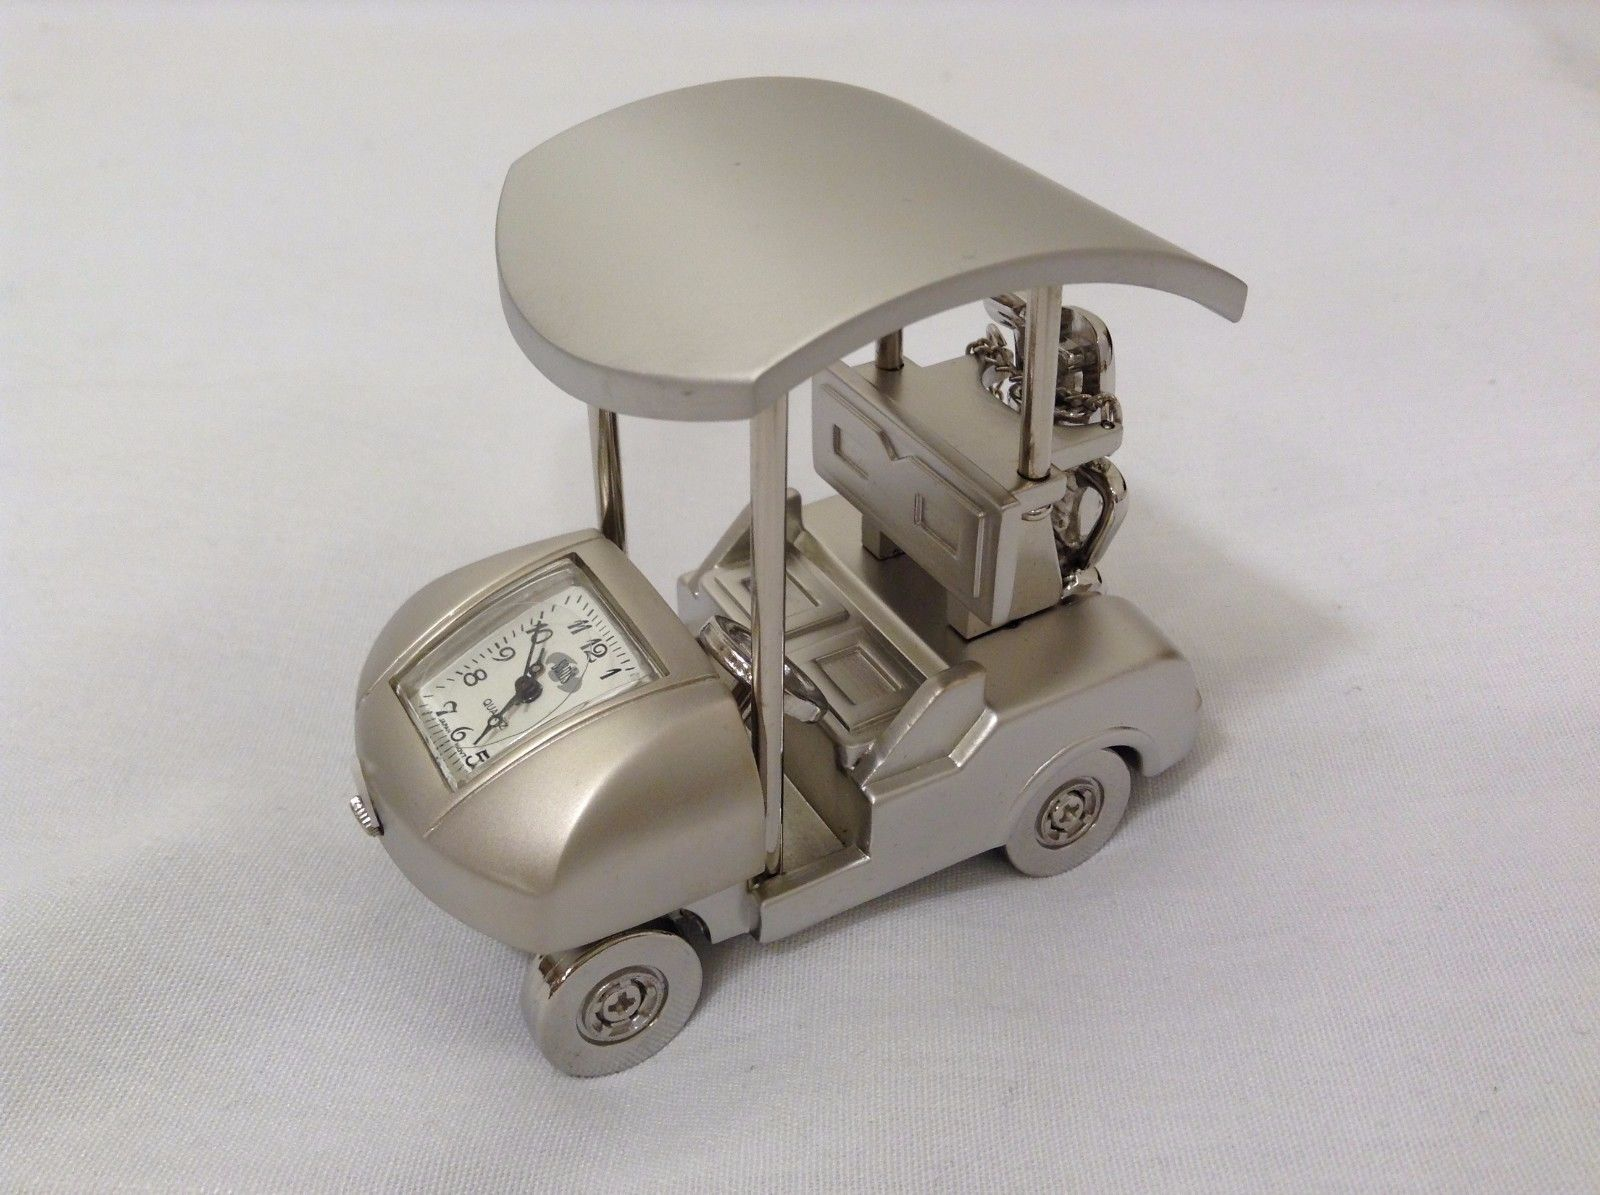 New Sanis Golf Cart Table Clock Silver Color Metal Heavy Cart Can Move On Wheels